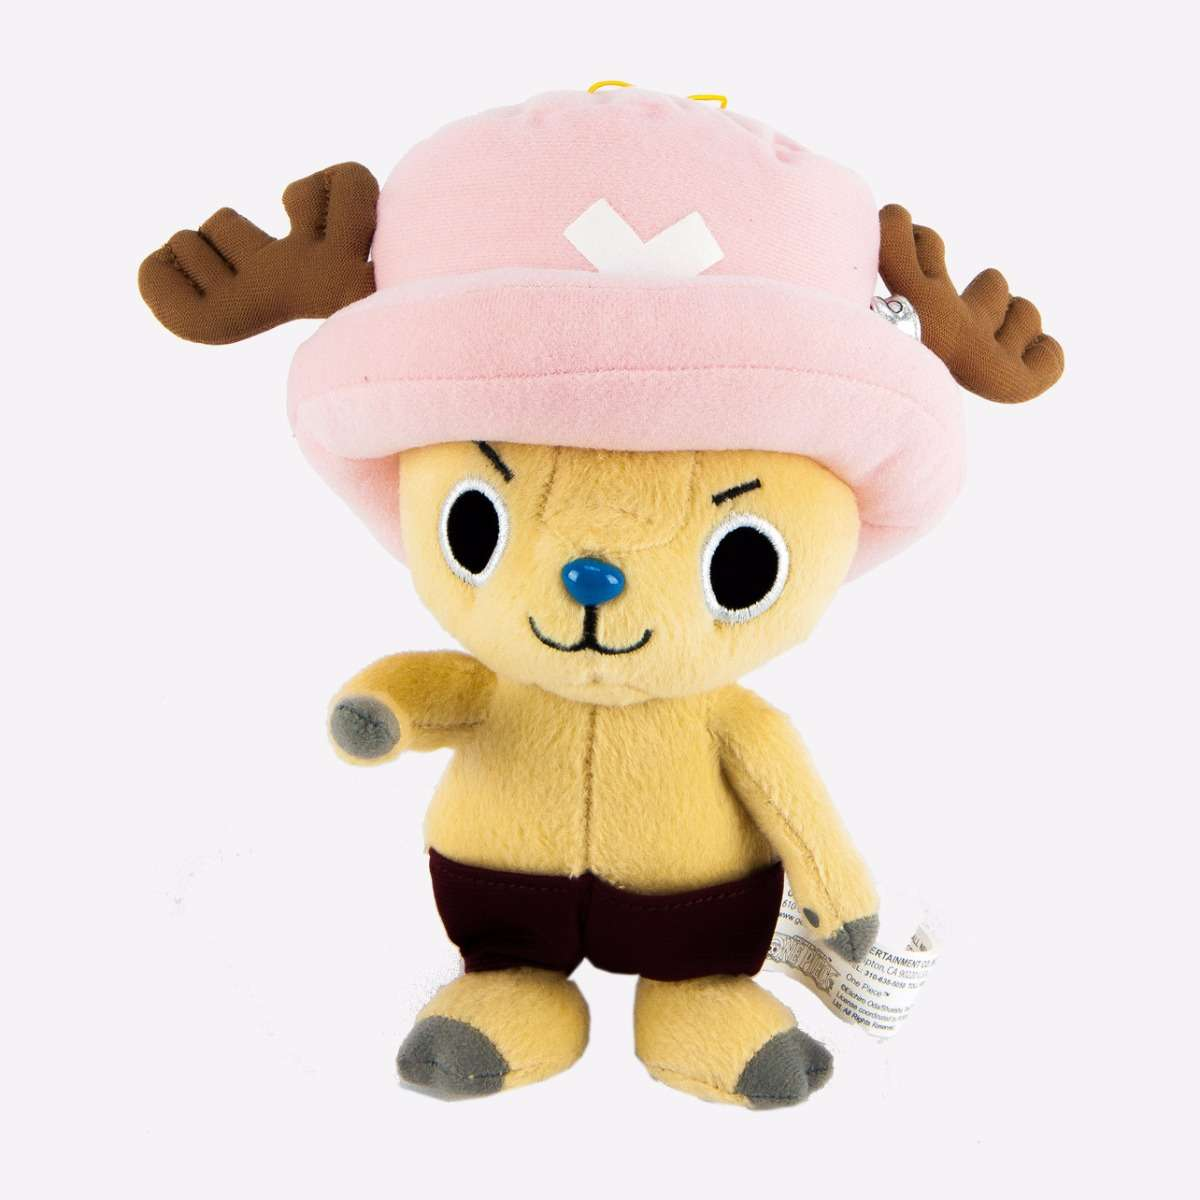 Chopper Plush toys-games